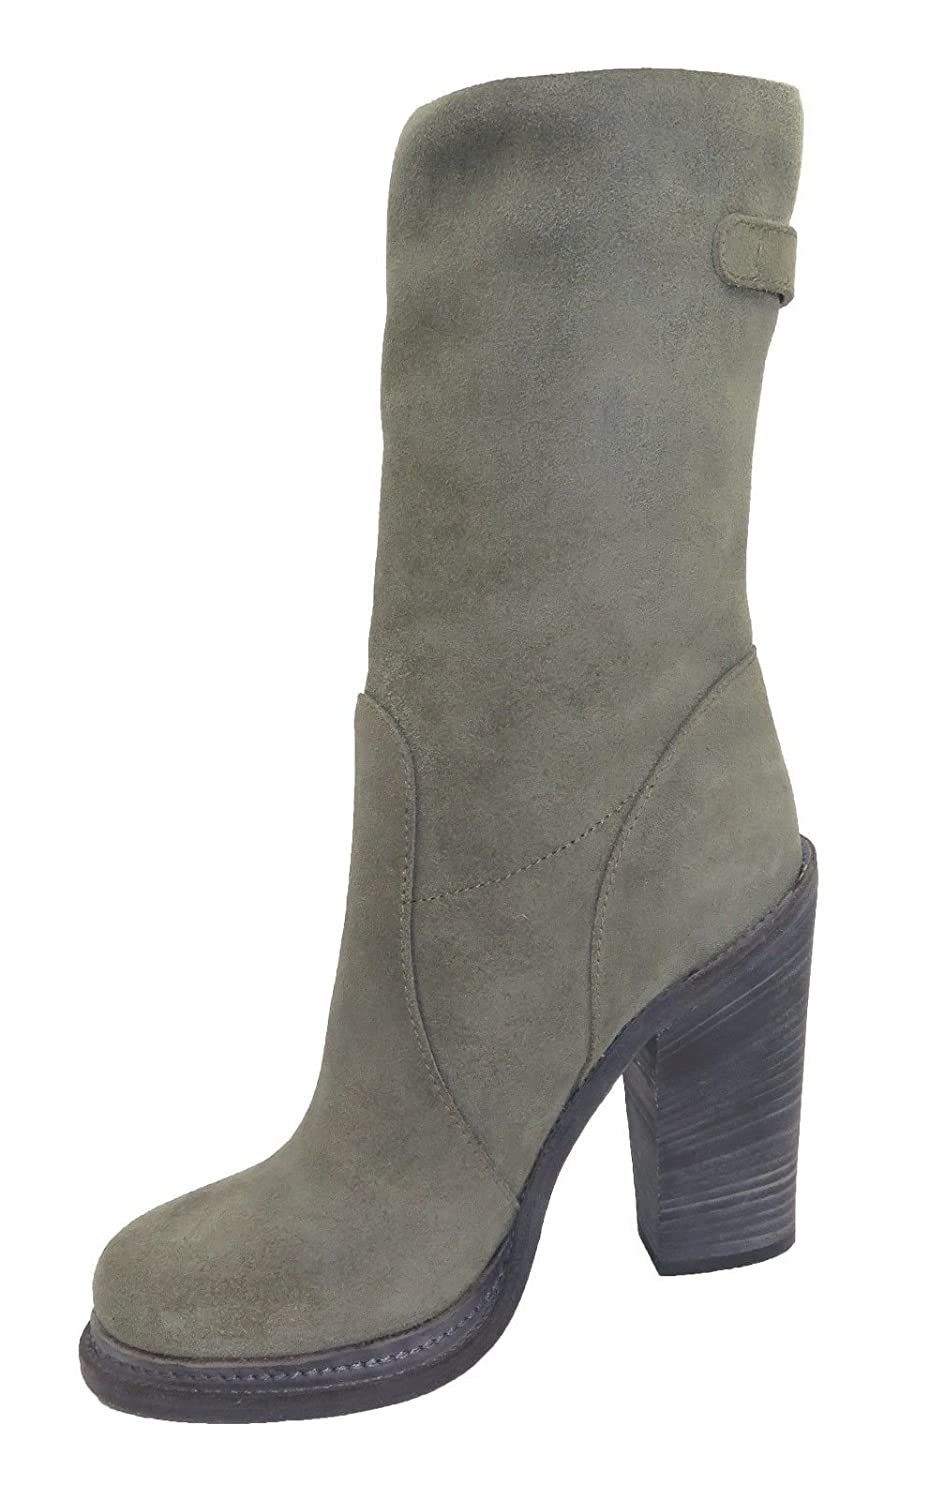 DOLCE & GABBANA Woman's Olive Green Suede Boots Size 7